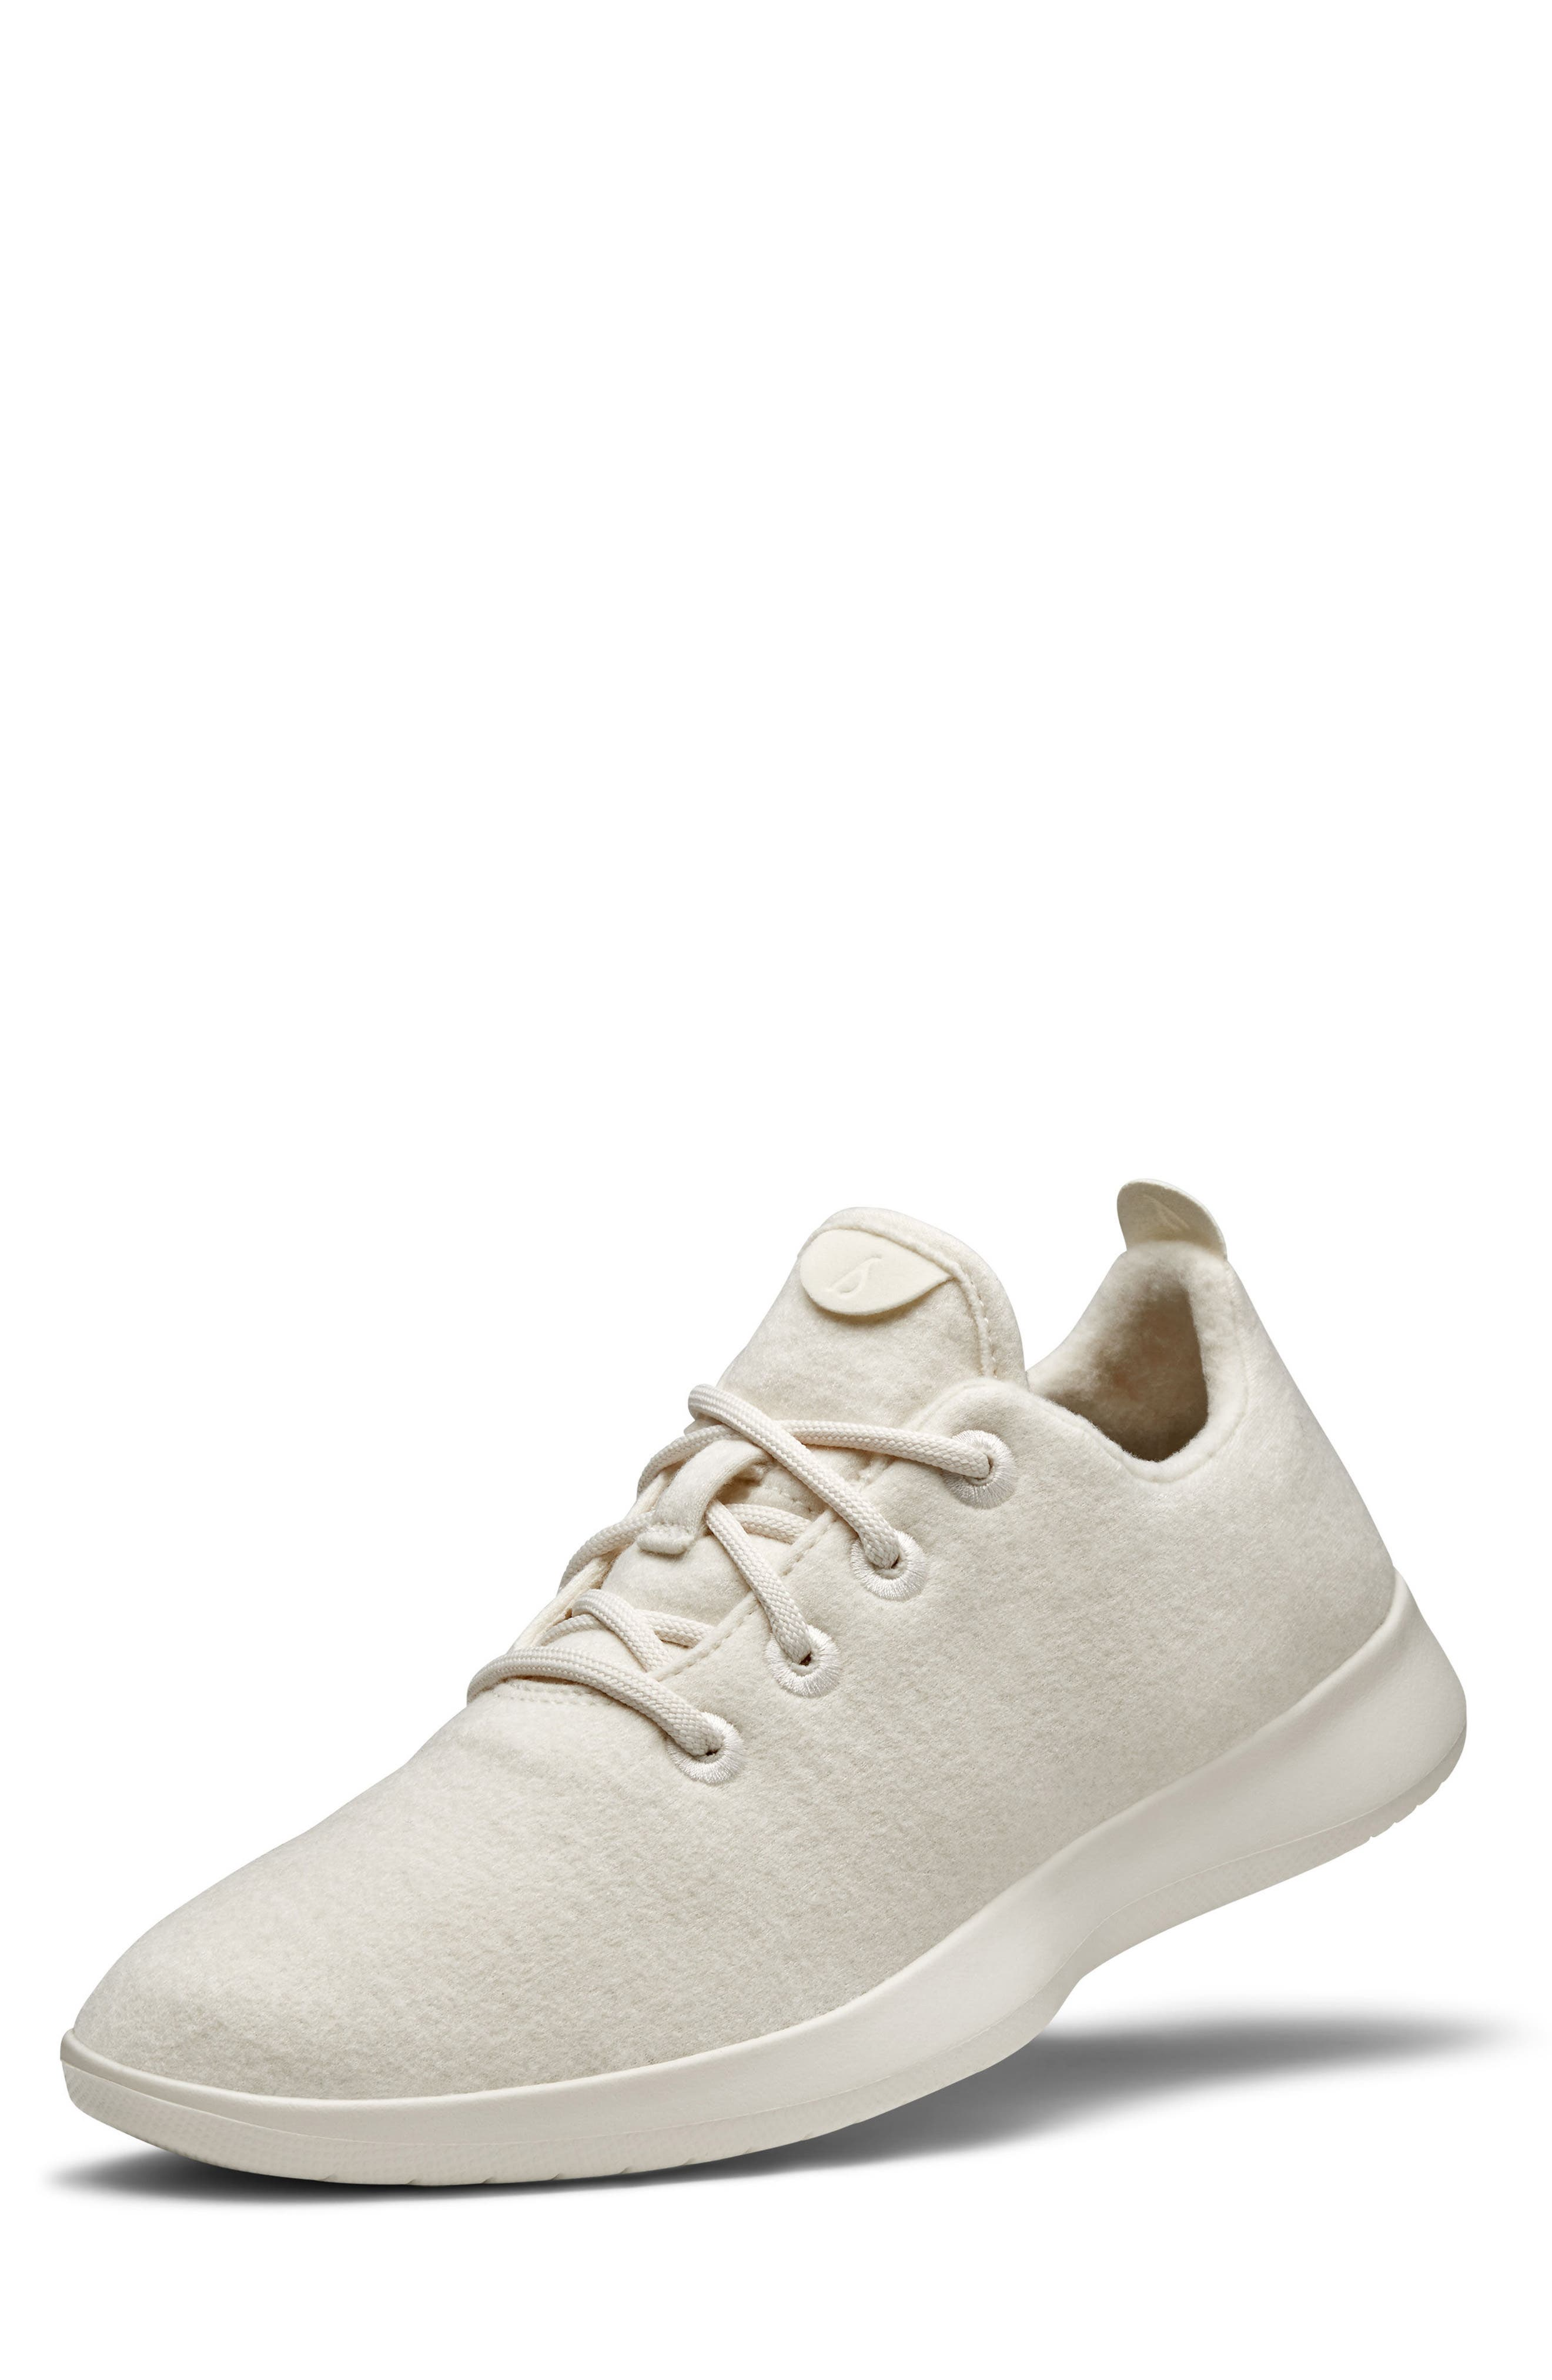 Wool Runner,                         Main,                         color, Natural White